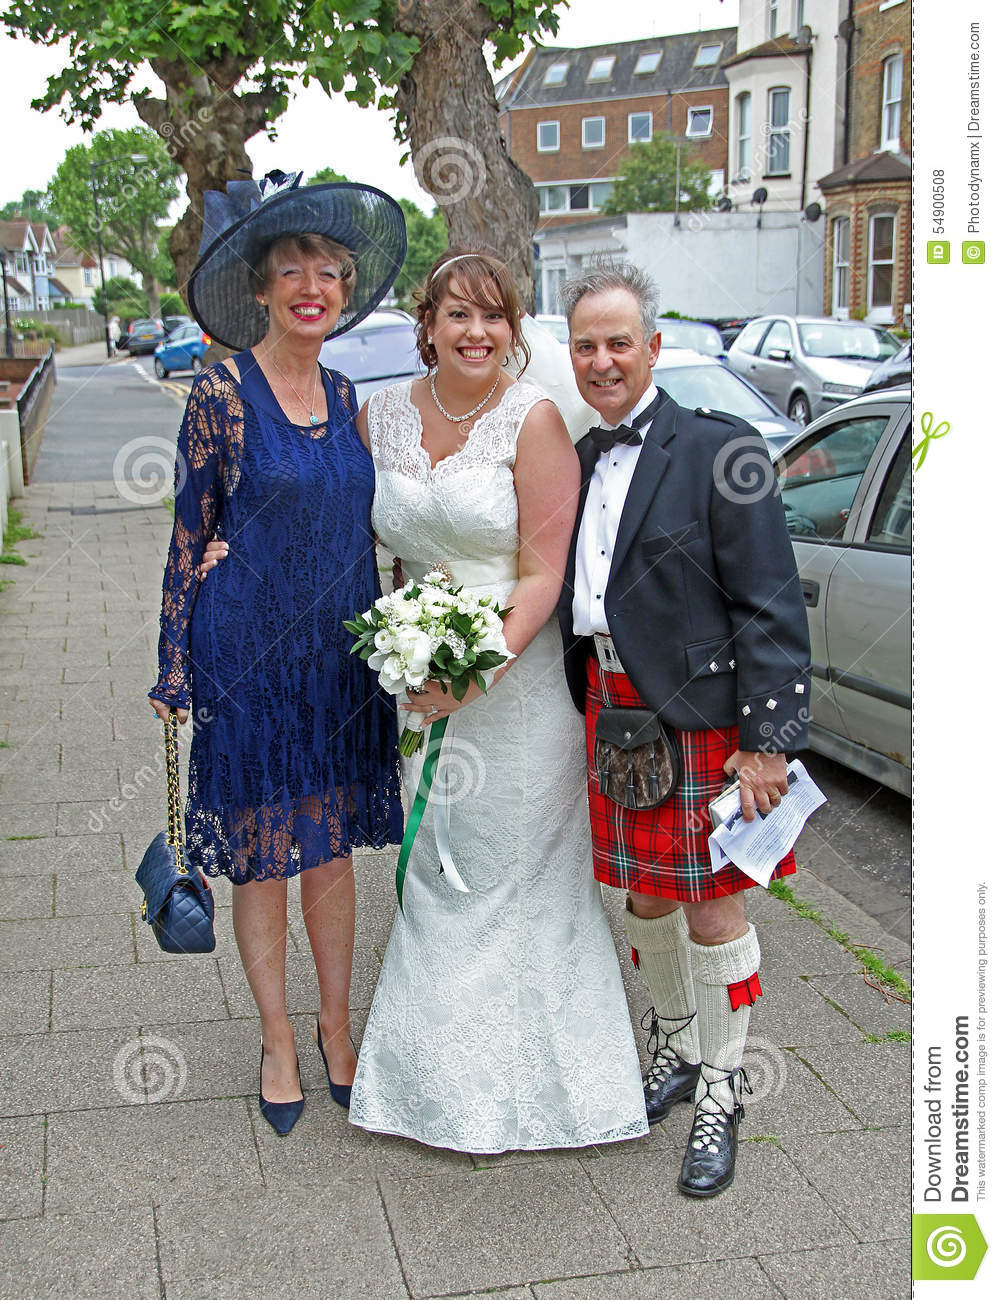 Scottish wedding editorial stock photo. Image of happy - 54900508